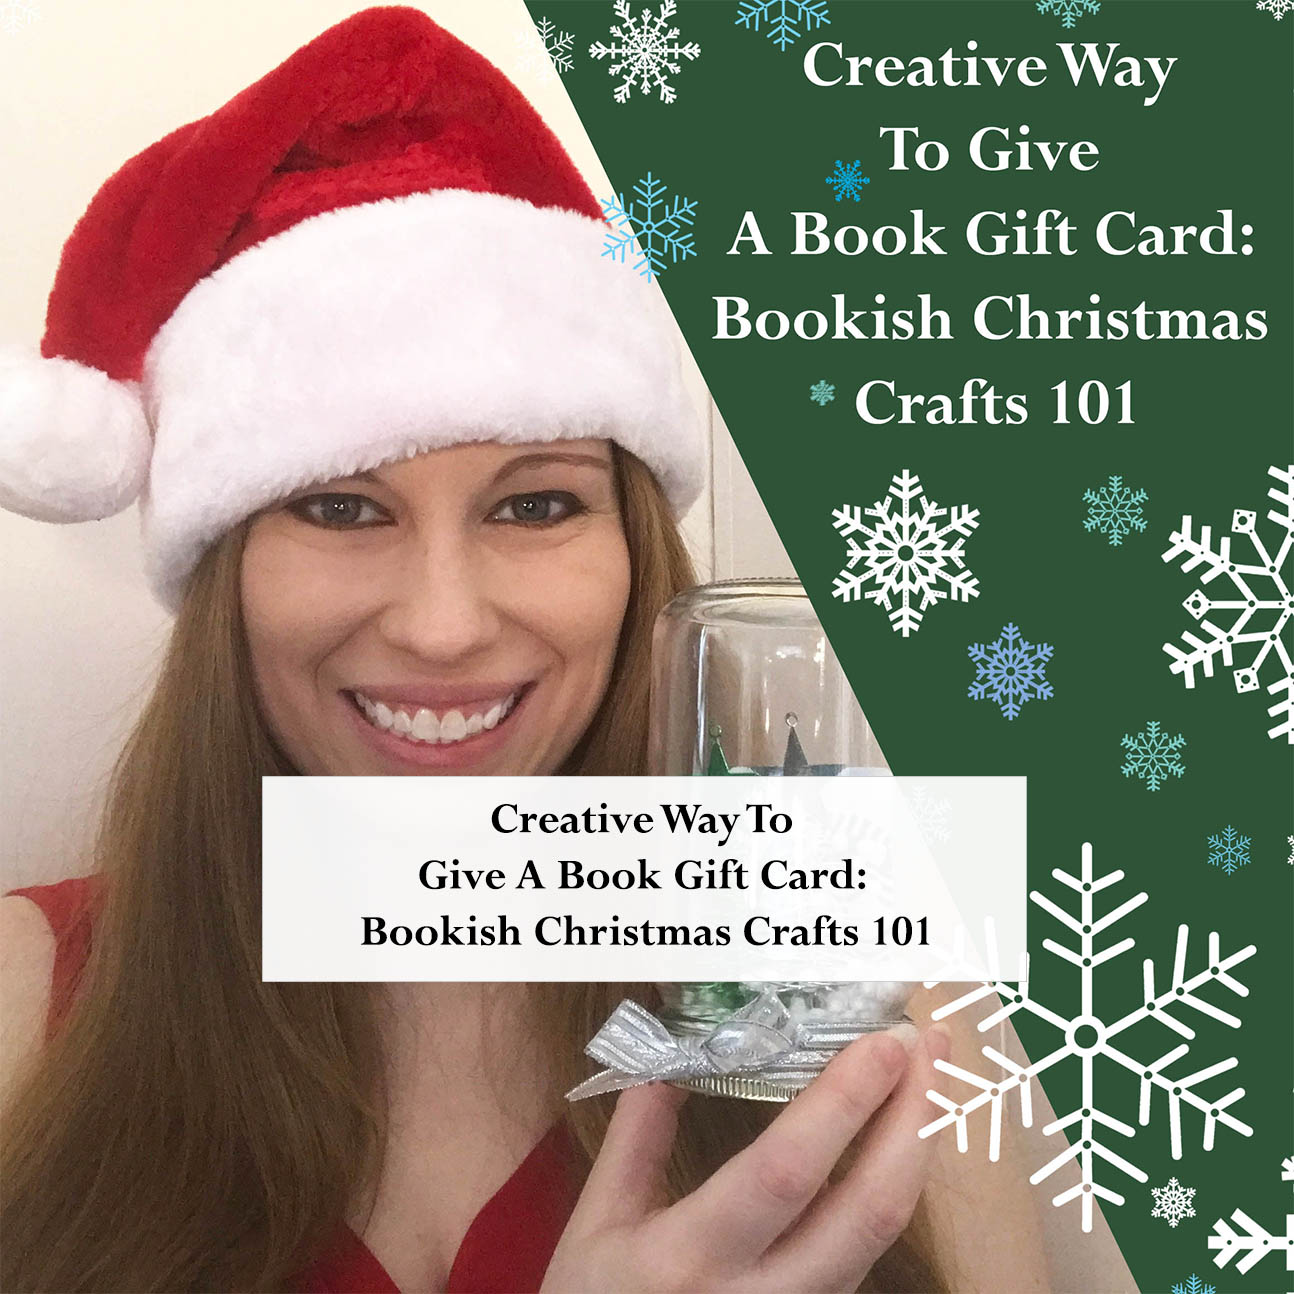 Creative Way To Give A Book Gift Card: Bookish Christmas Crafts 101 ...